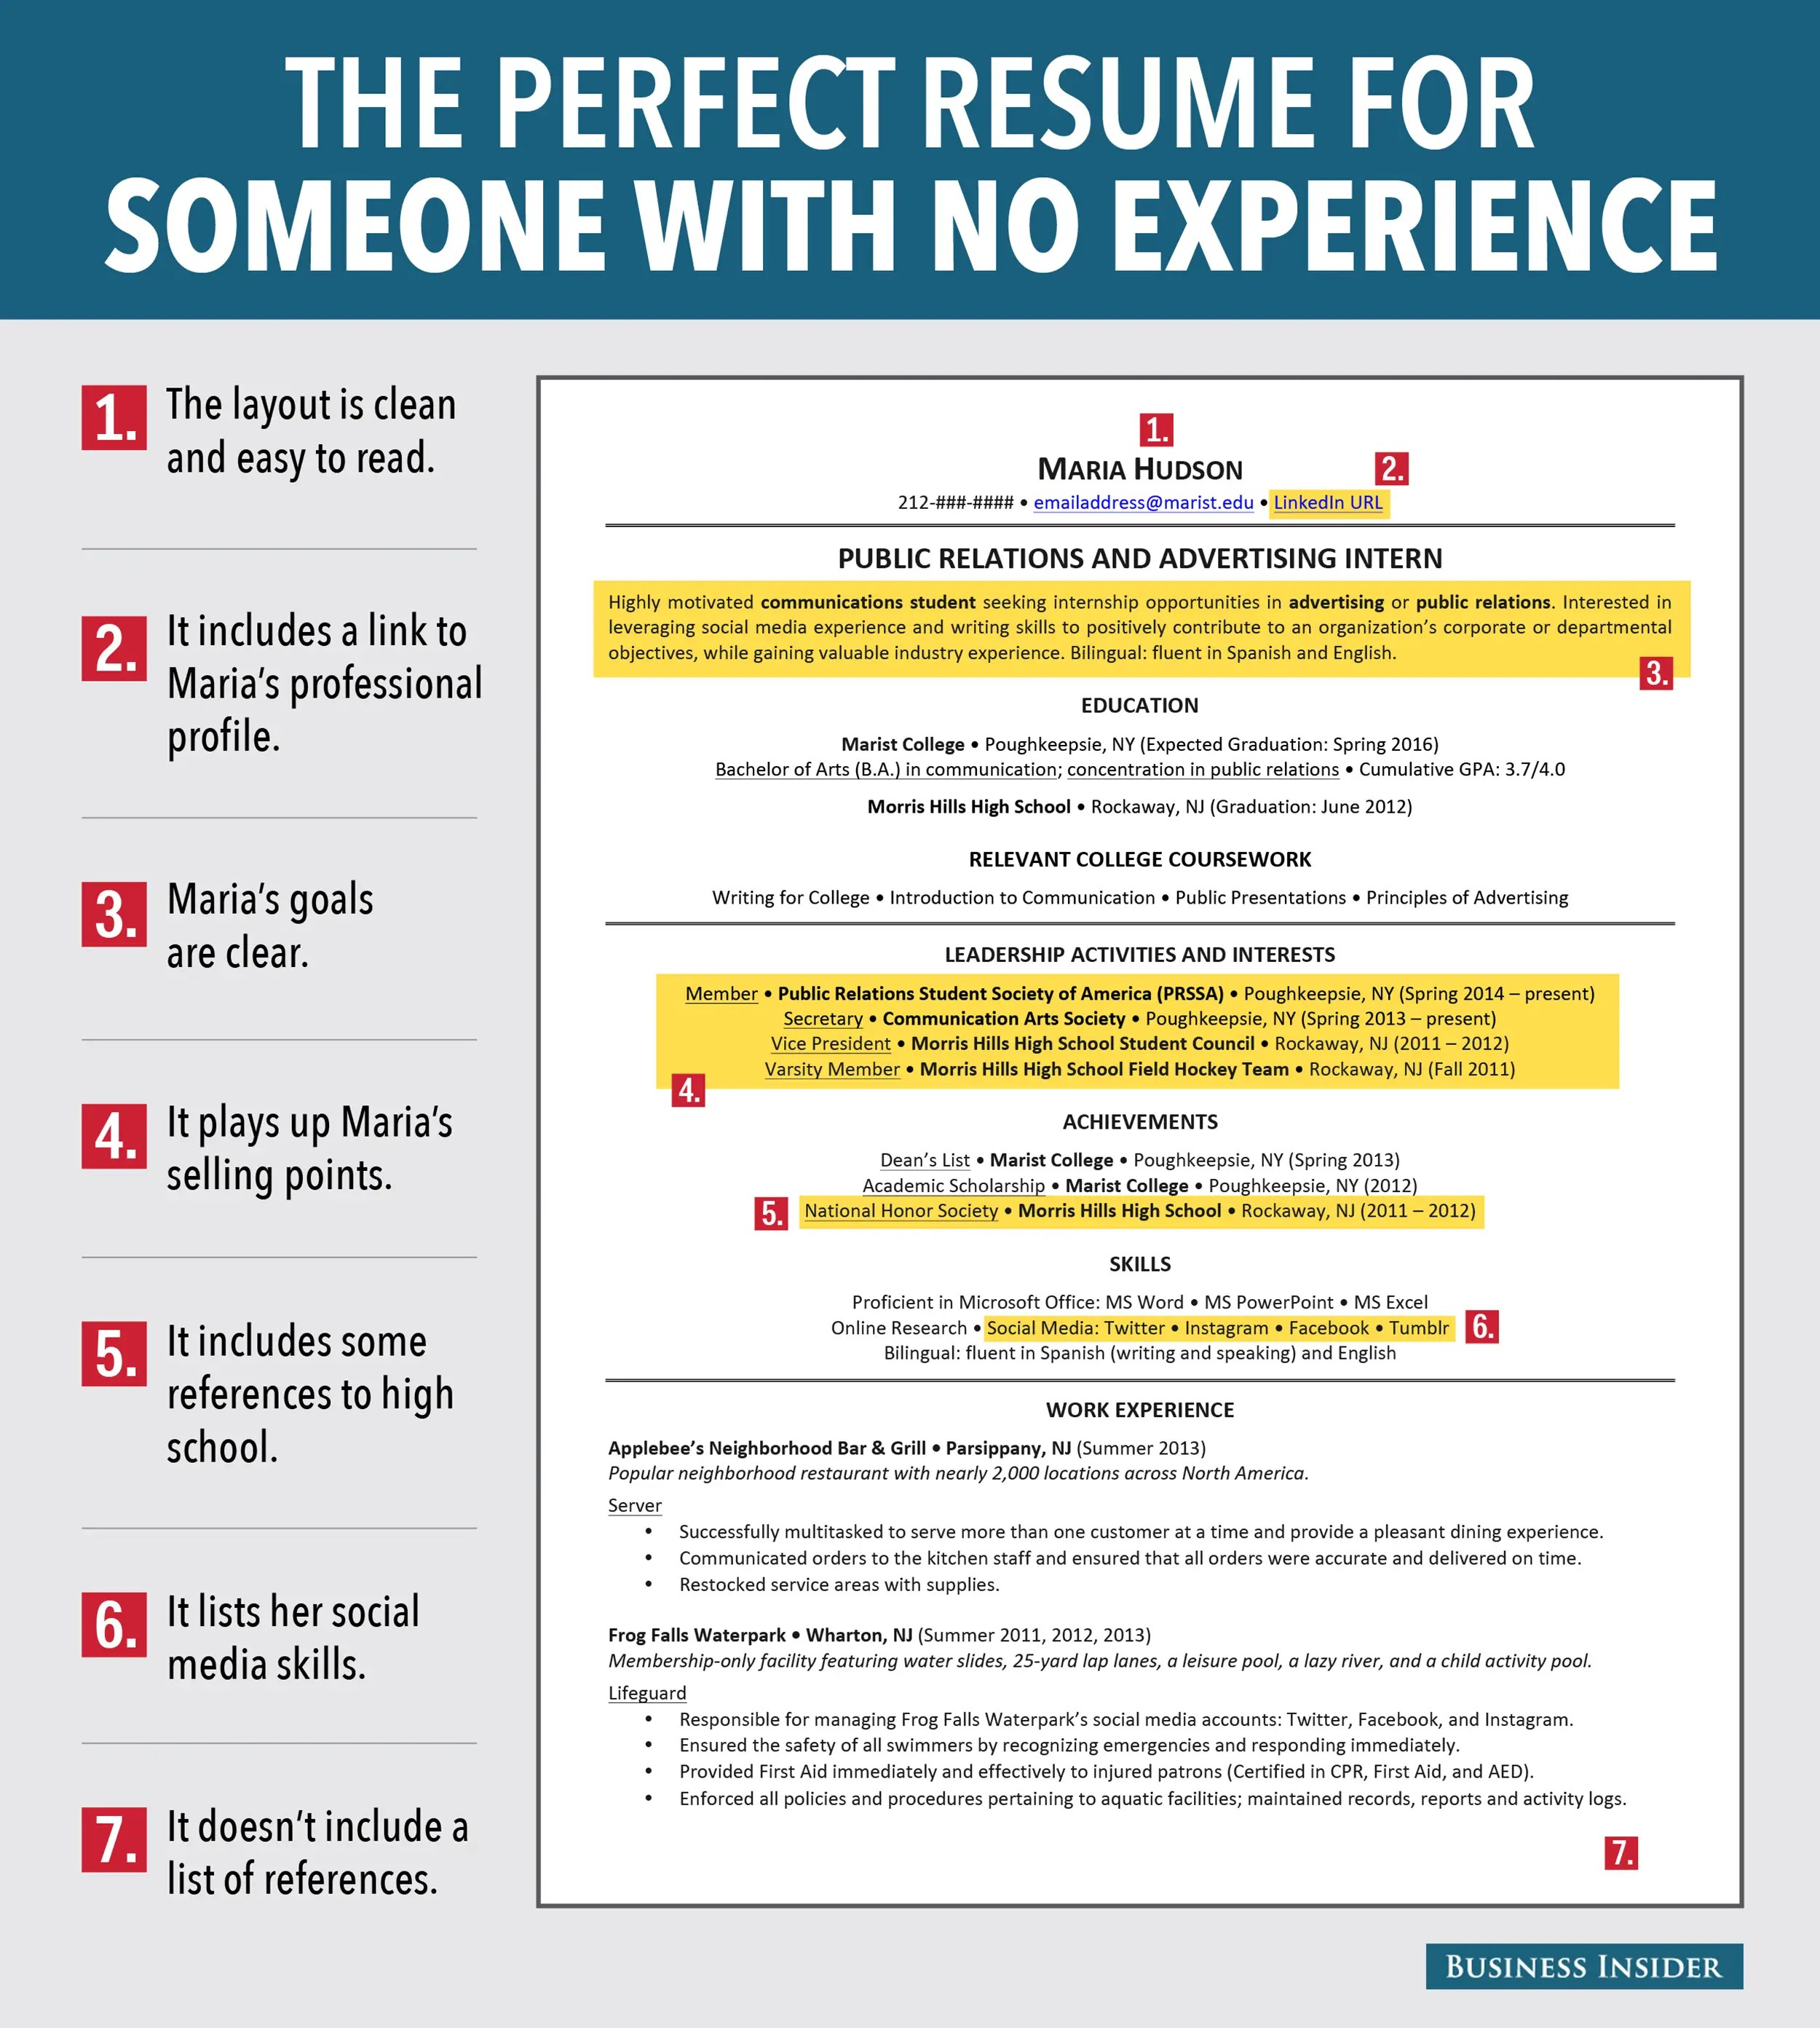 Reasons this is the ideal resume for someone with no work experience - resume with work experience